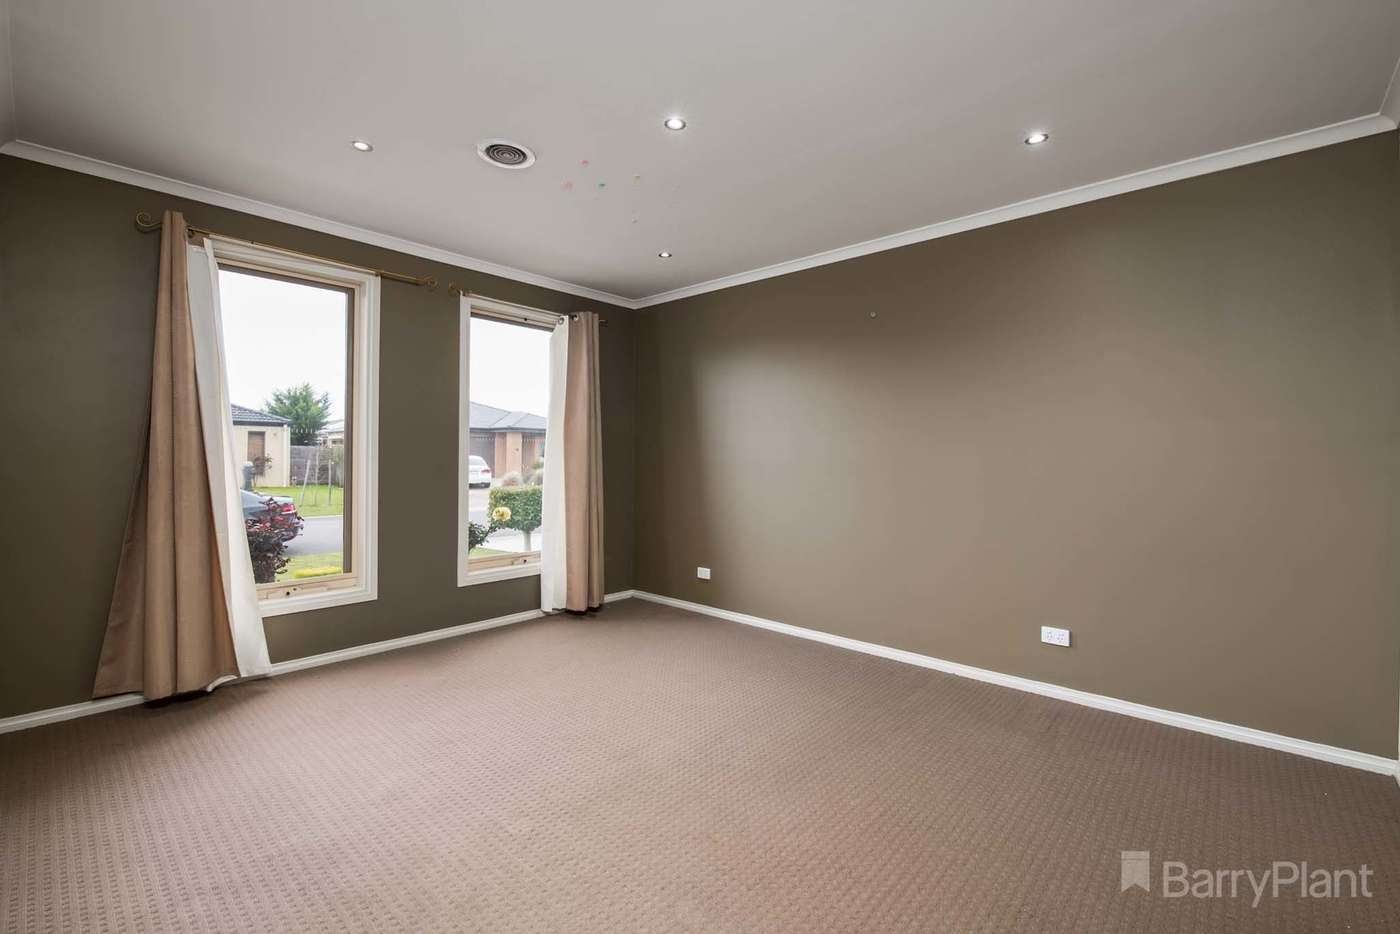 Seventh view of Homely house listing, 13 Currawong Crescent, Pakenham VIC 3810